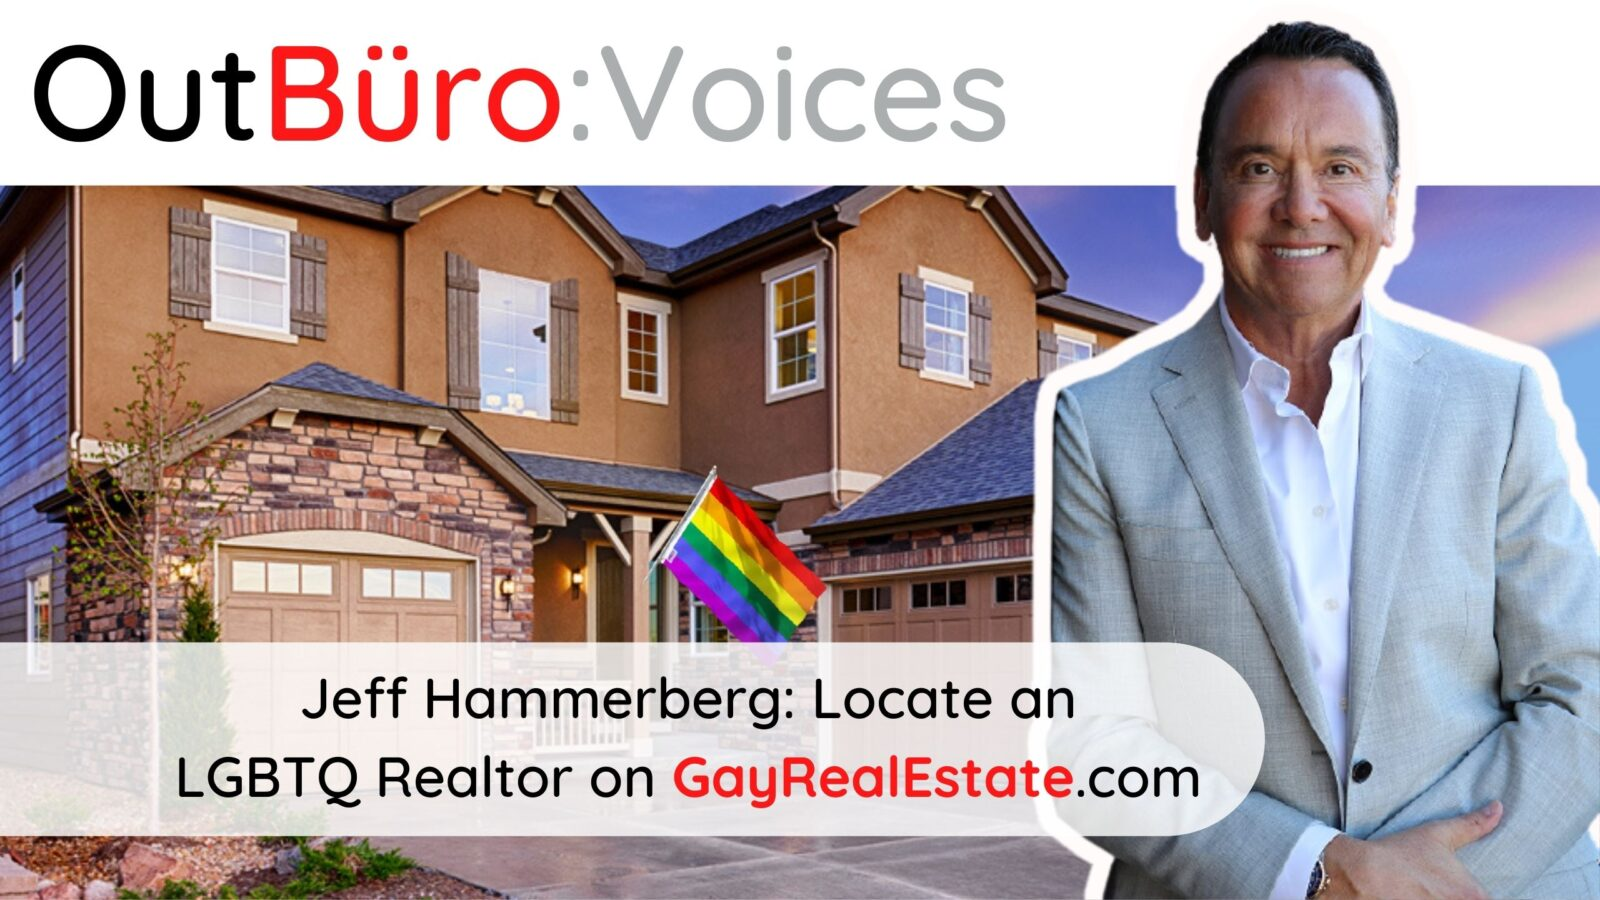 Jeff Hammerberg_ Locate an LGBTQ Realtor on GayRealEstate.com lgbt out gay entrepreneur lgbtq business owners lesbian queer community OutBuro